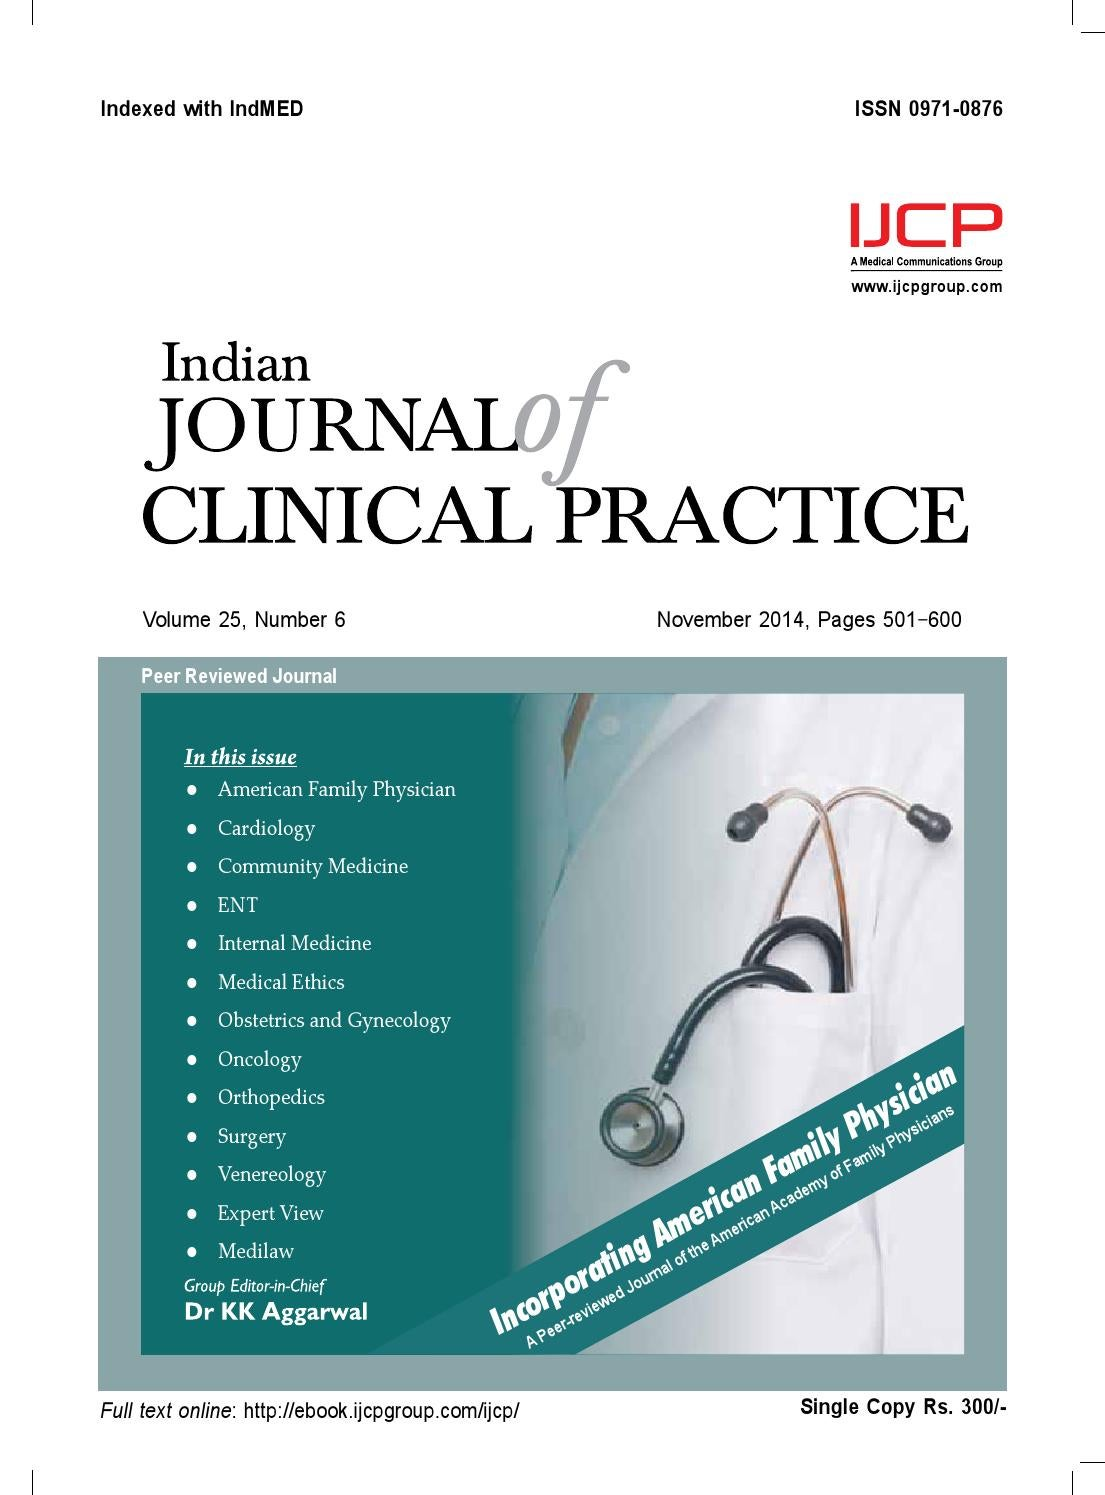 Bob long vis manual ebook page 233 array indian journal of clinical practice november 2014 by ijcp issuu rh issuu fandeluxe